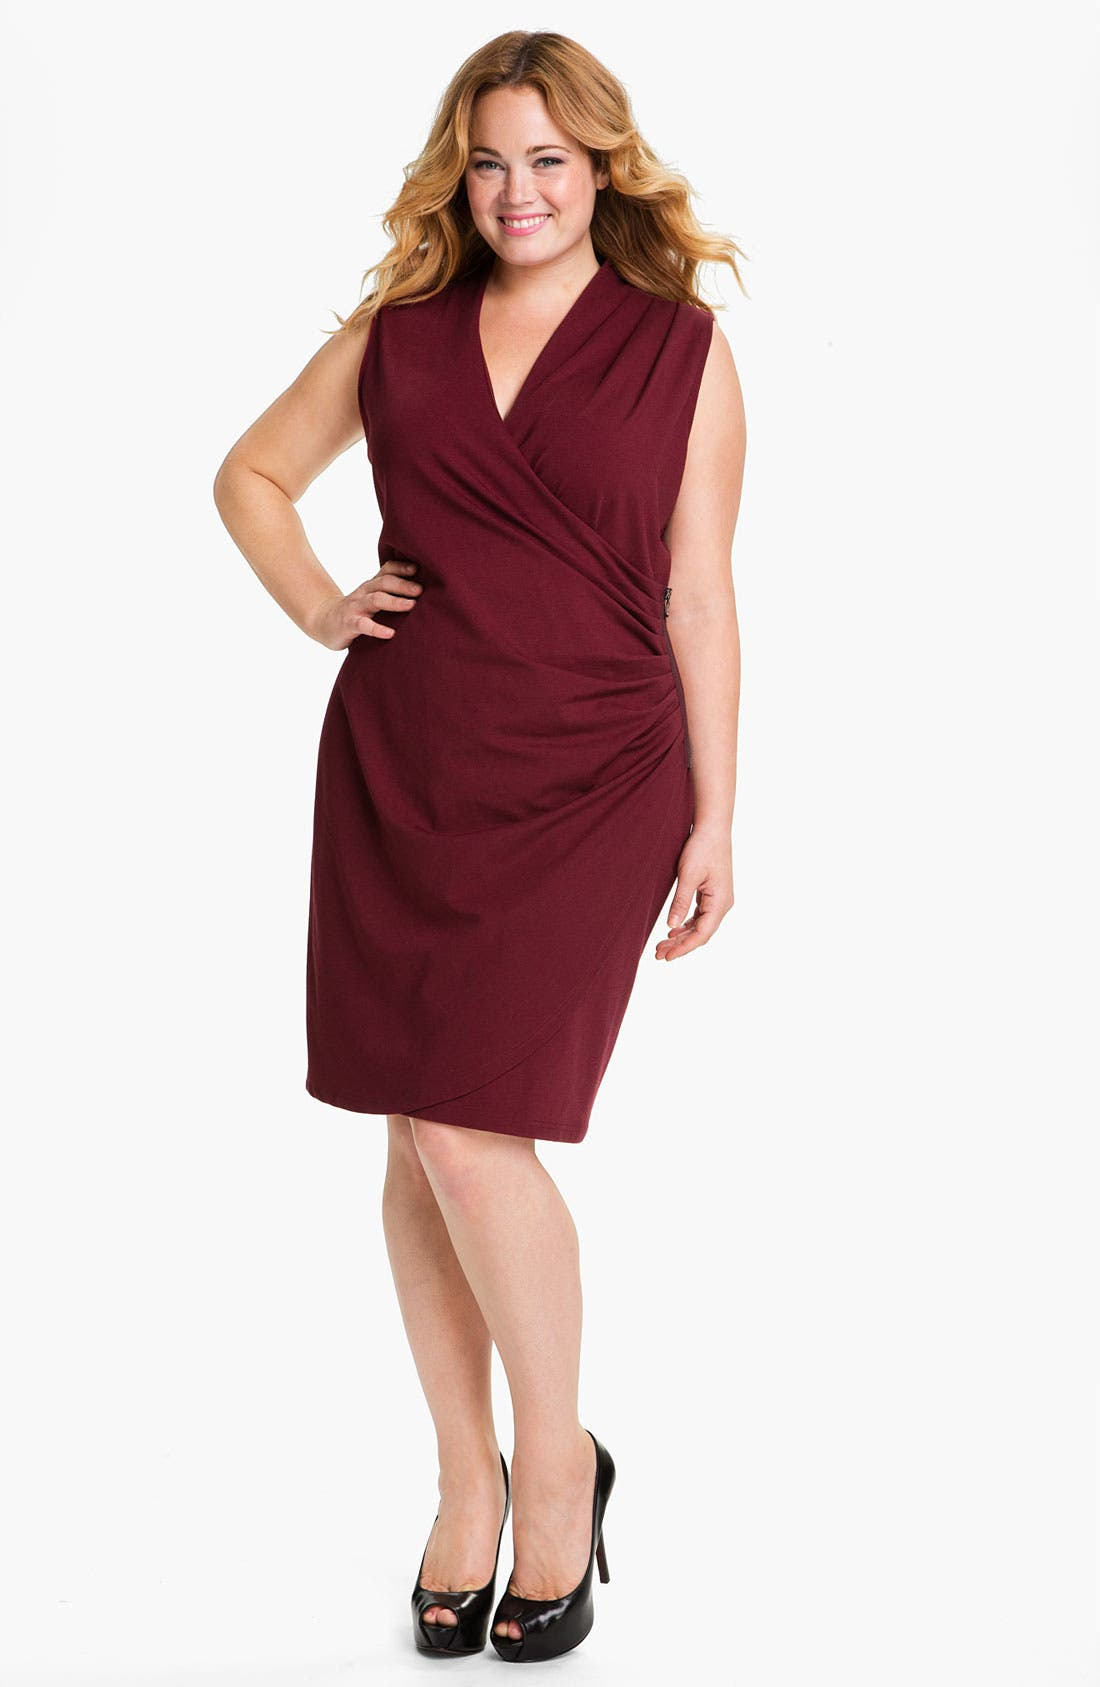 Main Image - Kenneth Cole New York 'Lindsey' Sleeveless Ponte Knit Sheath Dress (Plus)